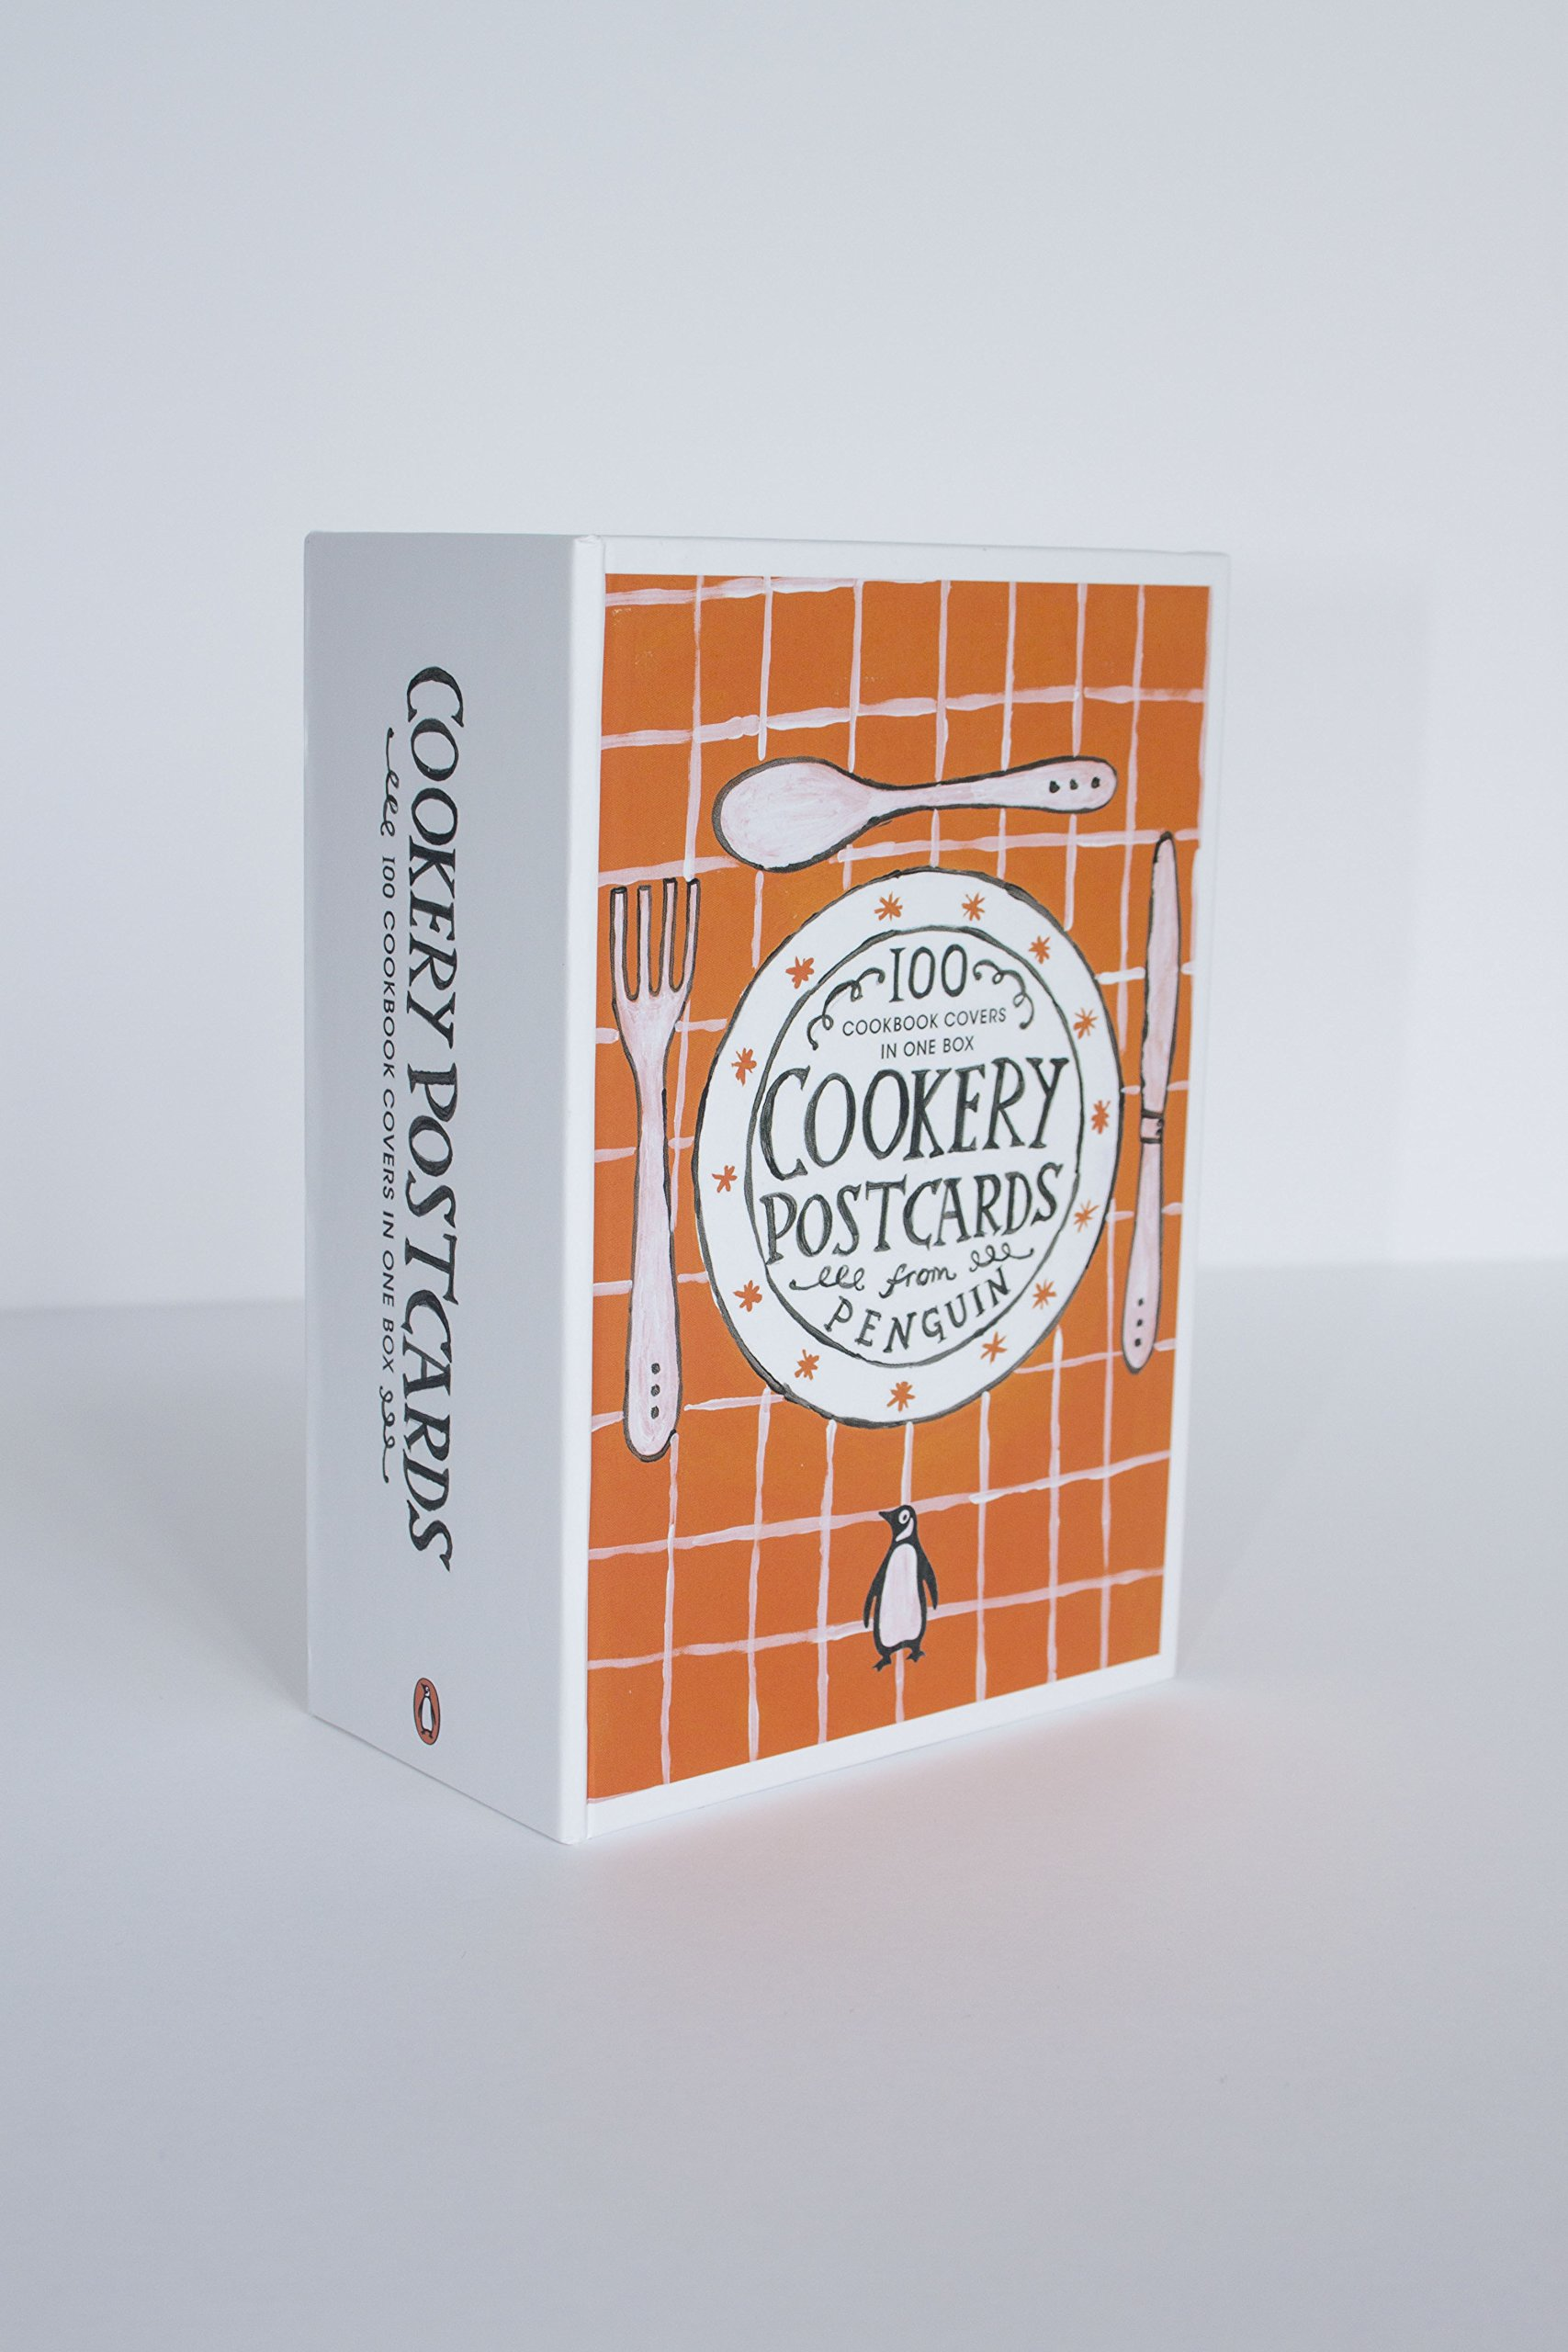 amazon cookery postcards from penguin 100 cookbook covers in one